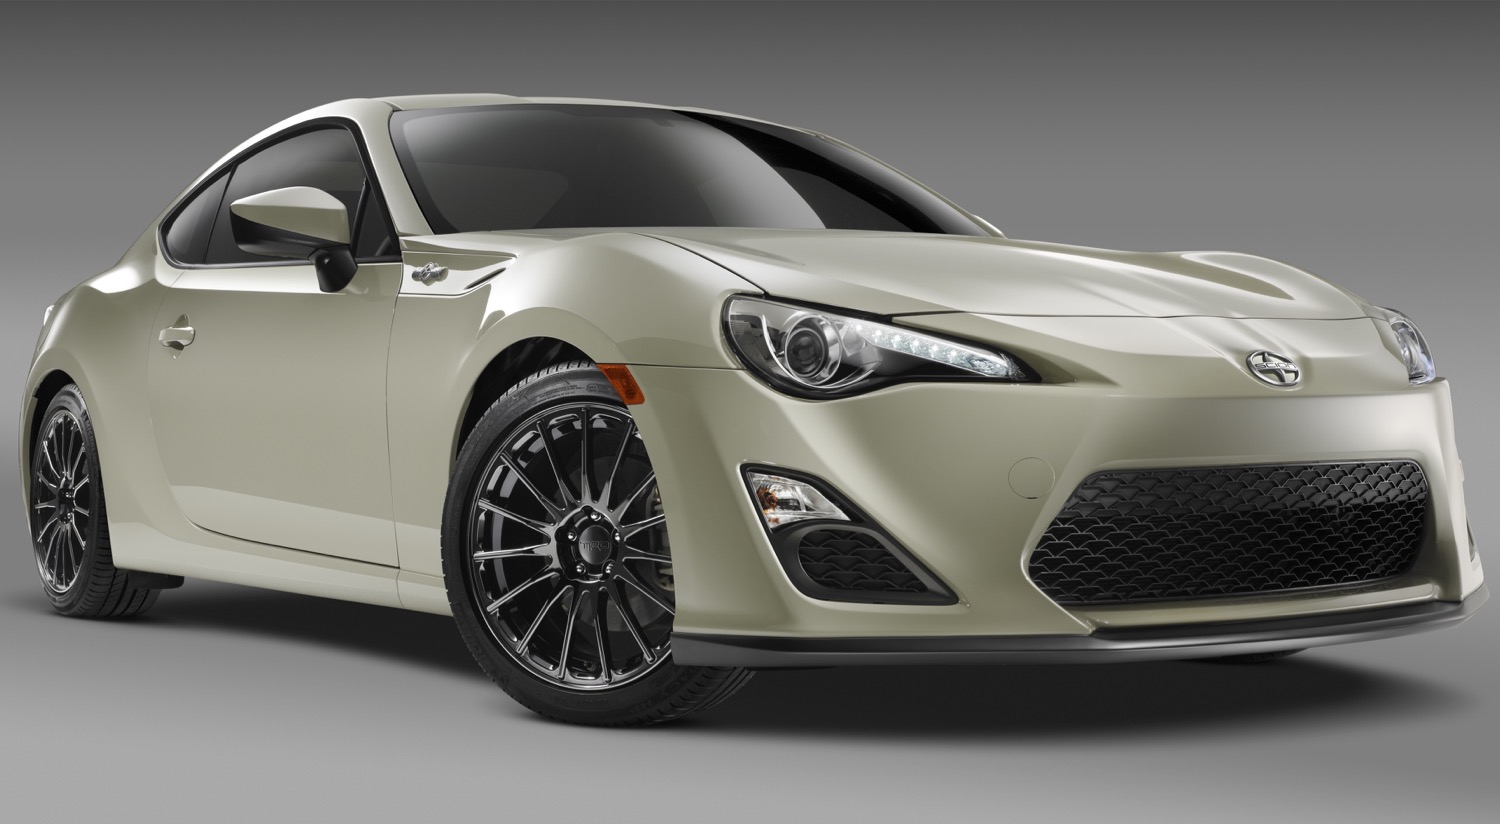 Will the updated 2017 Scion FRS get a power bump from a new